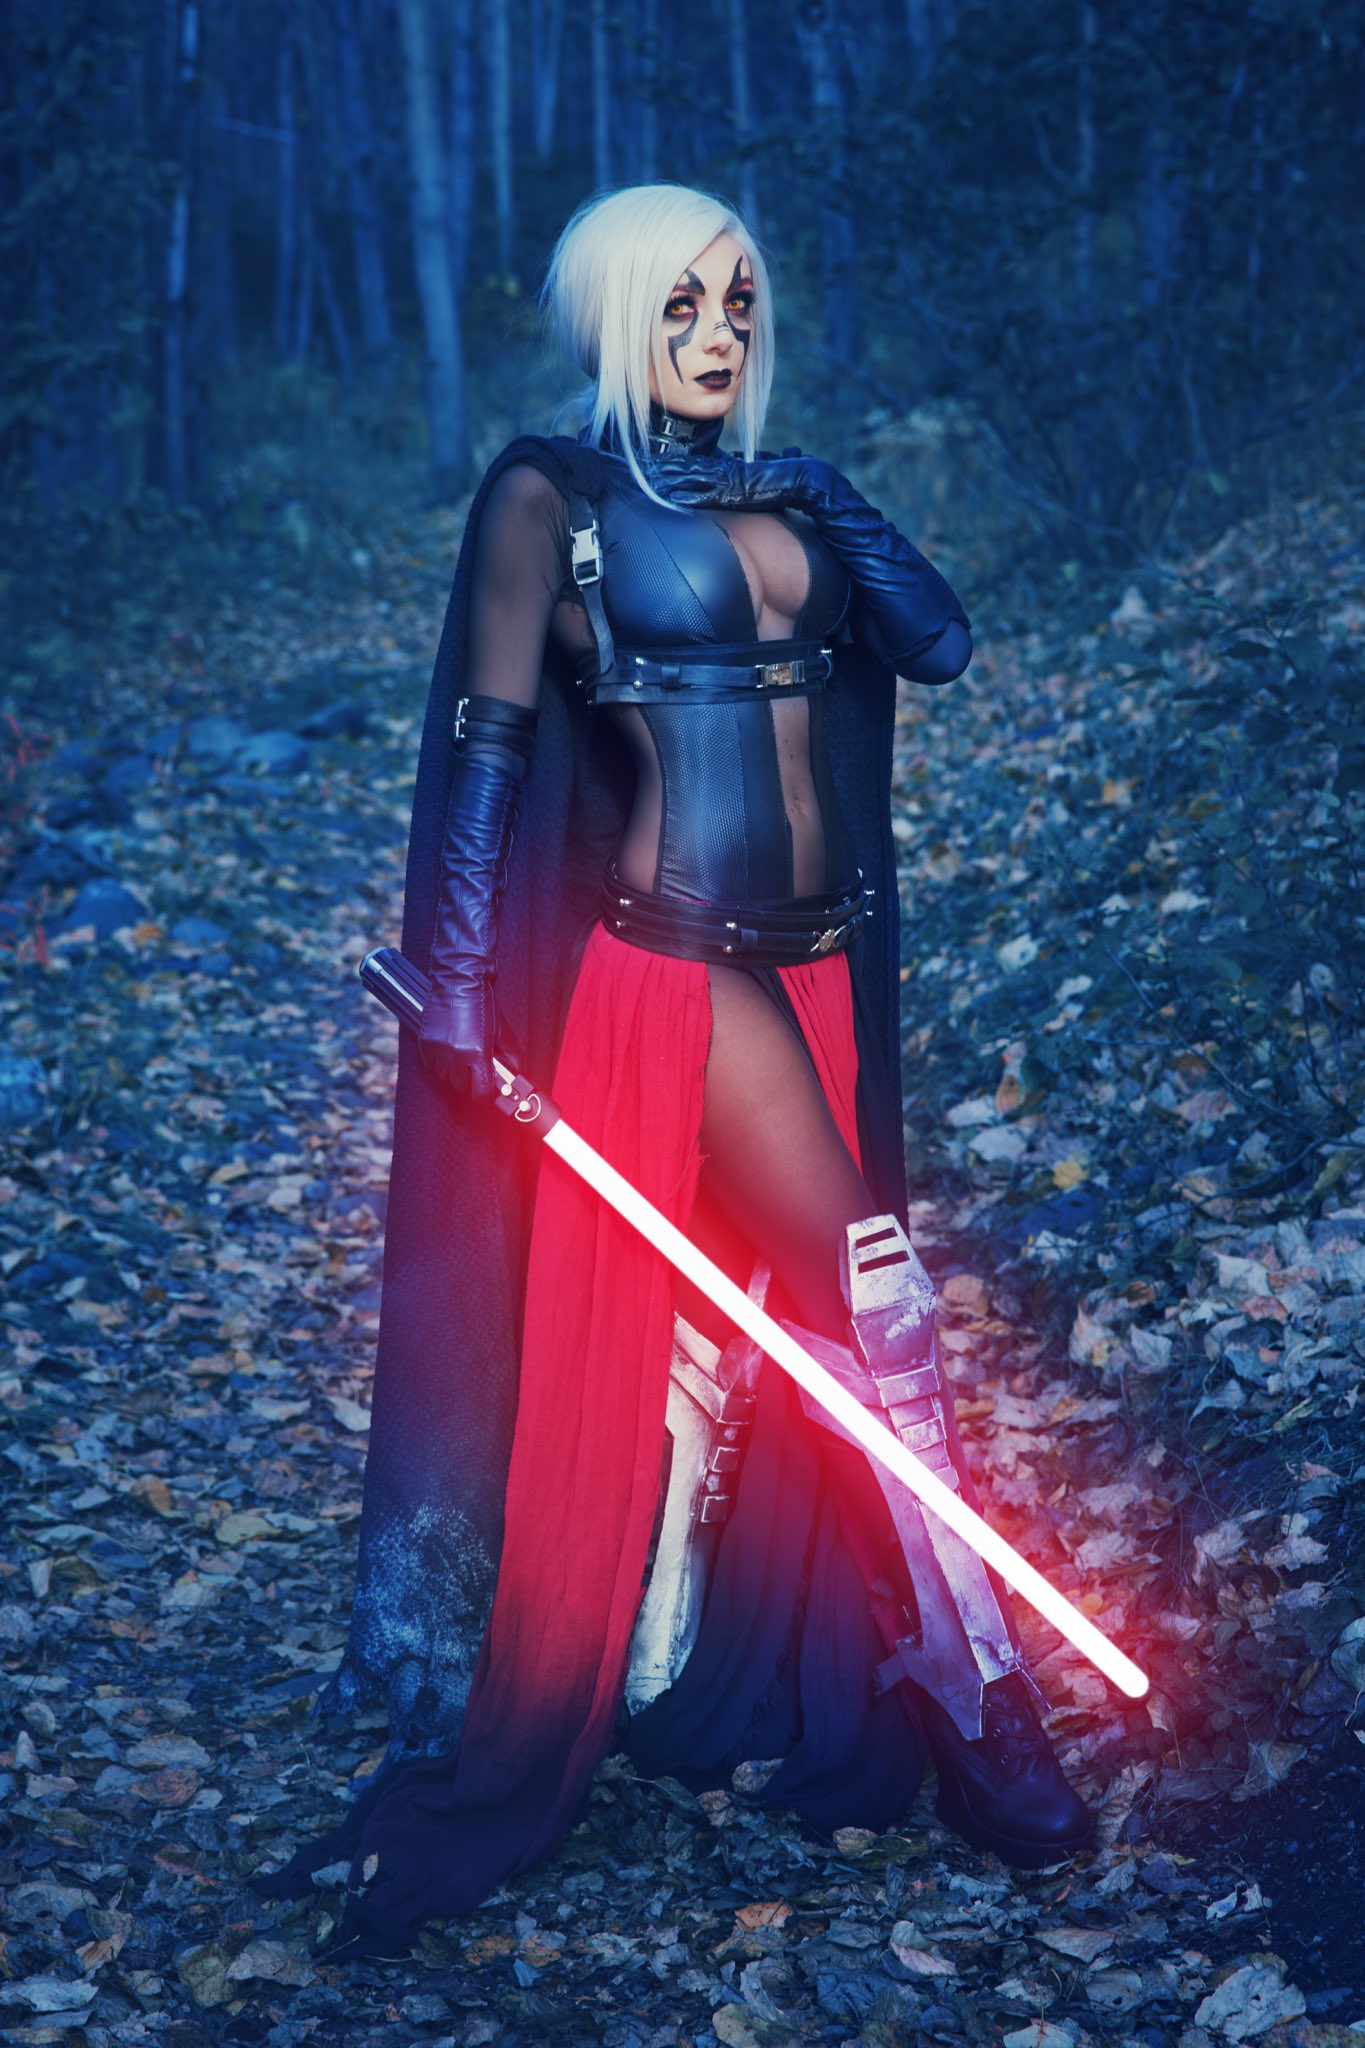 Fall Wallpaper With Dogs Jessica Nigri On Twitter Quot Rt For Sith Likes For Jedi You